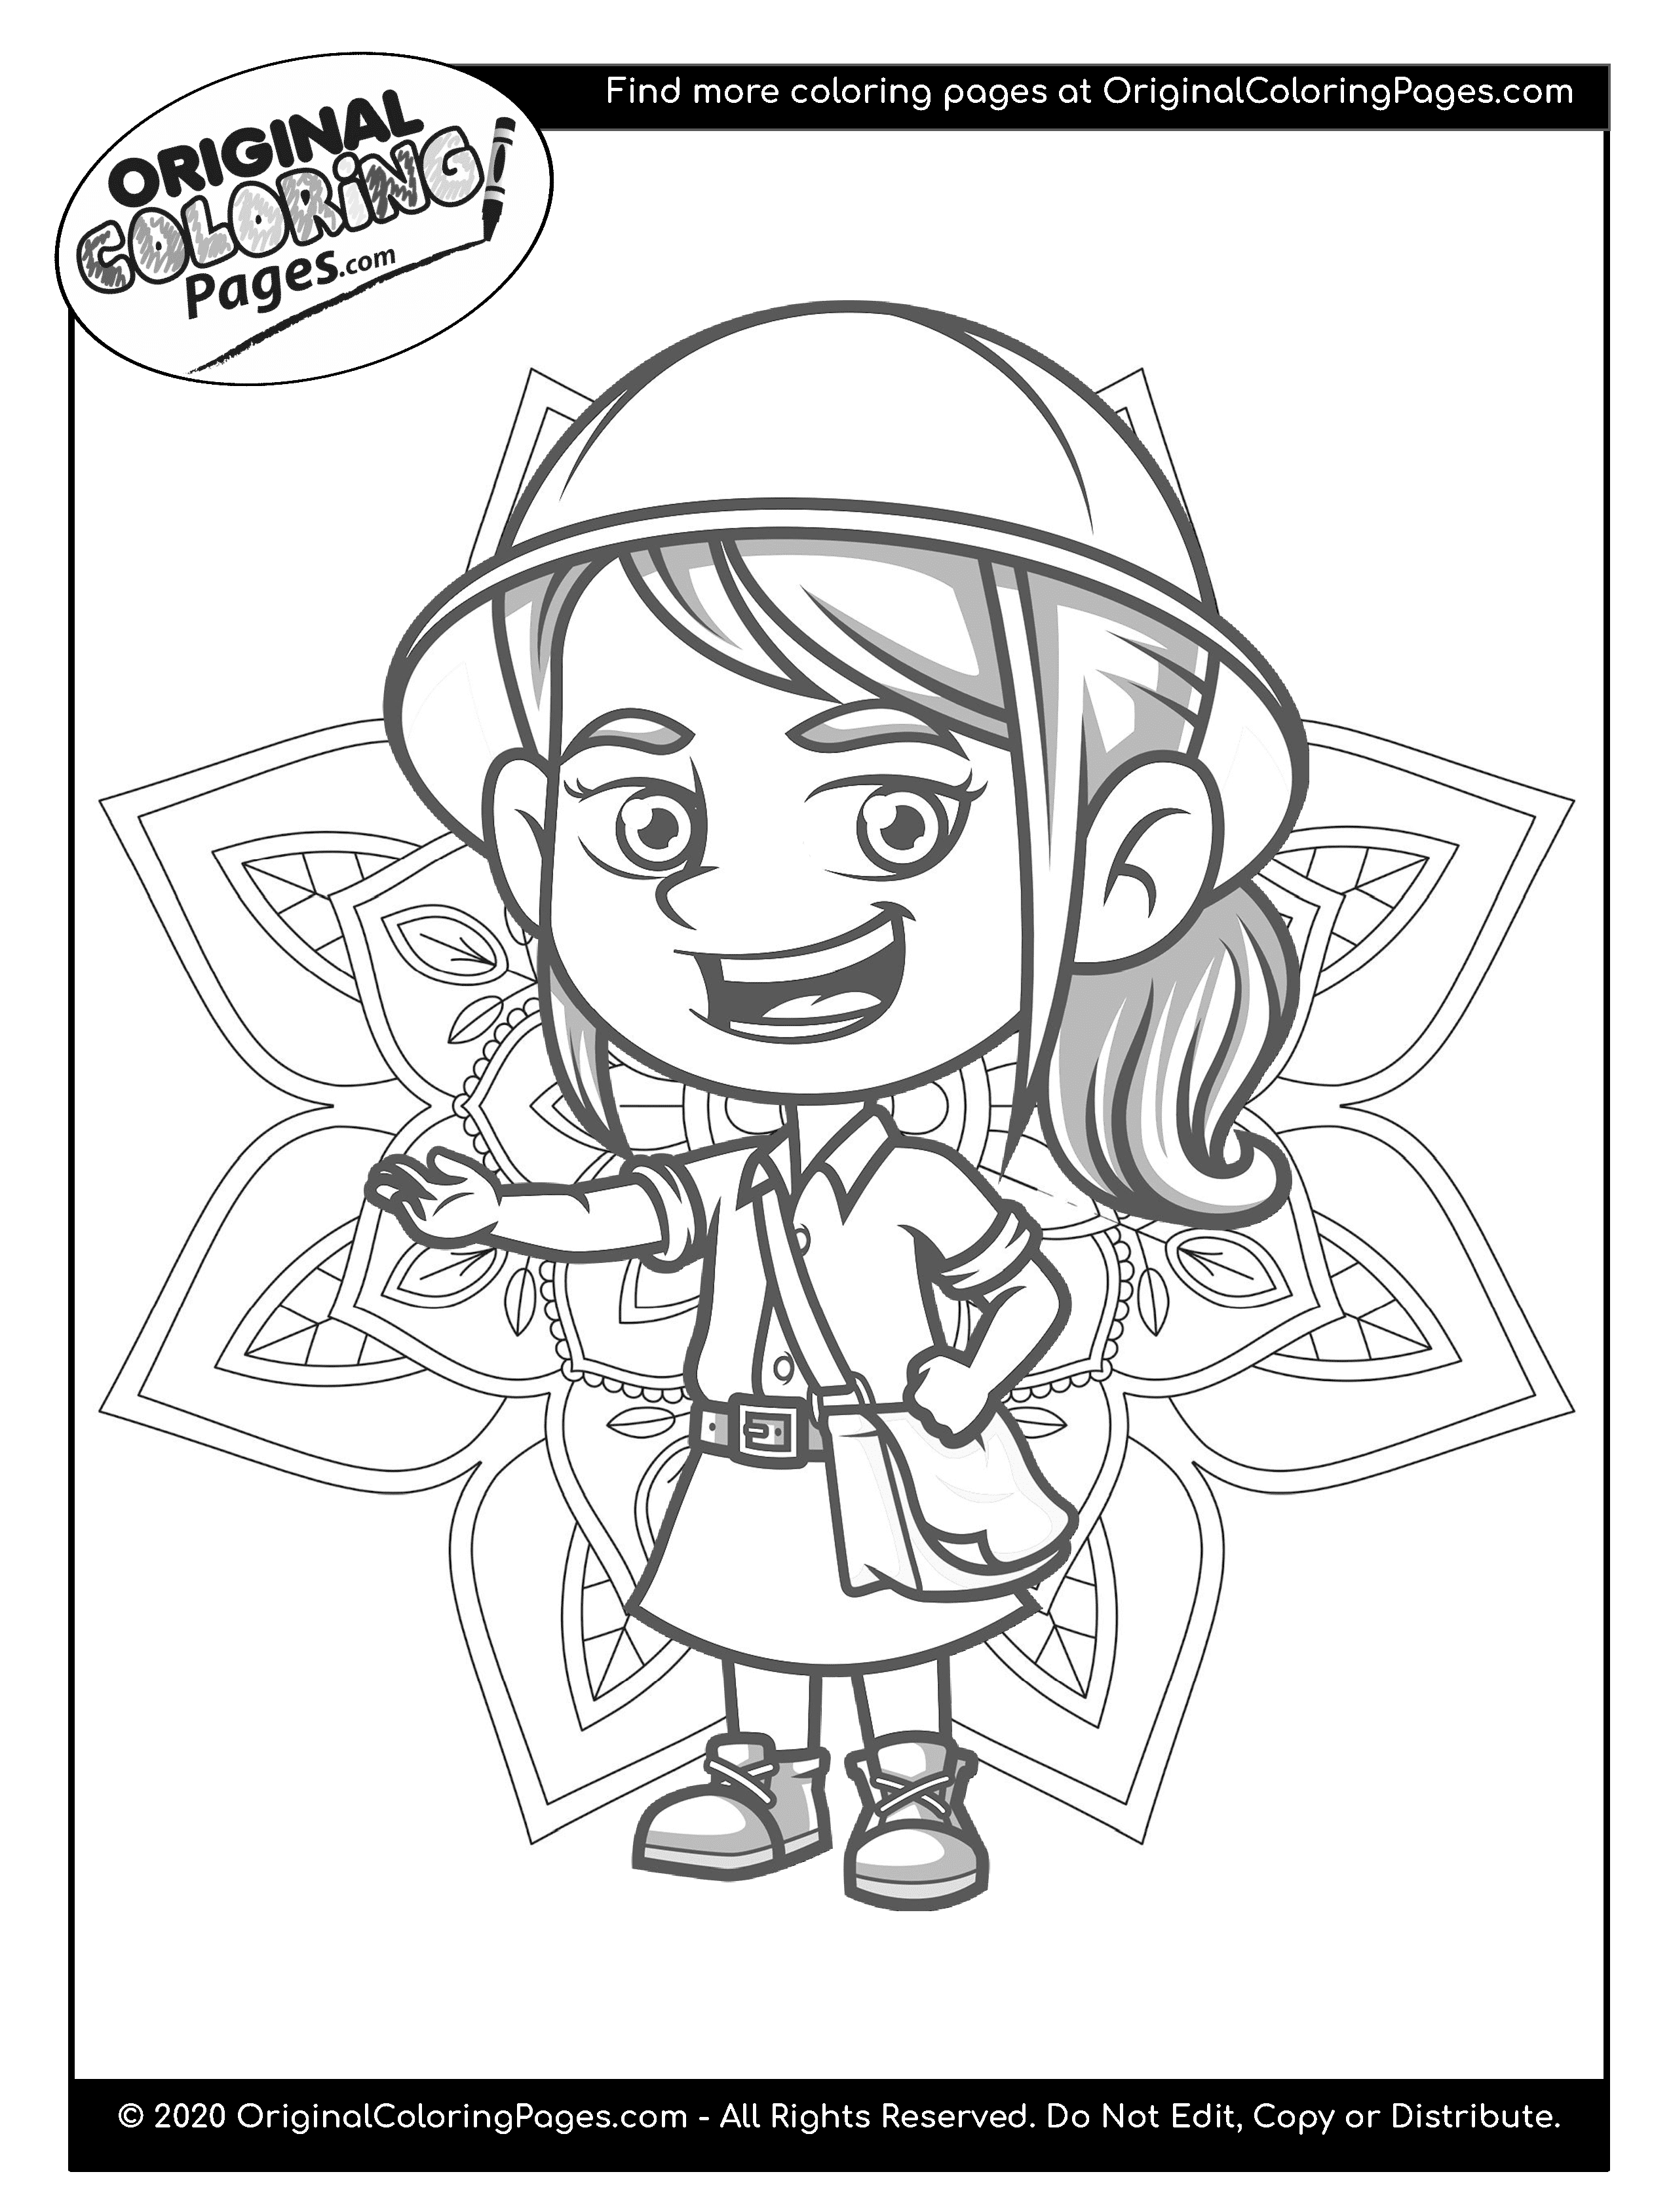 explorers coloring pages coloring page explorer free printable coloring pages explorers coloring pages